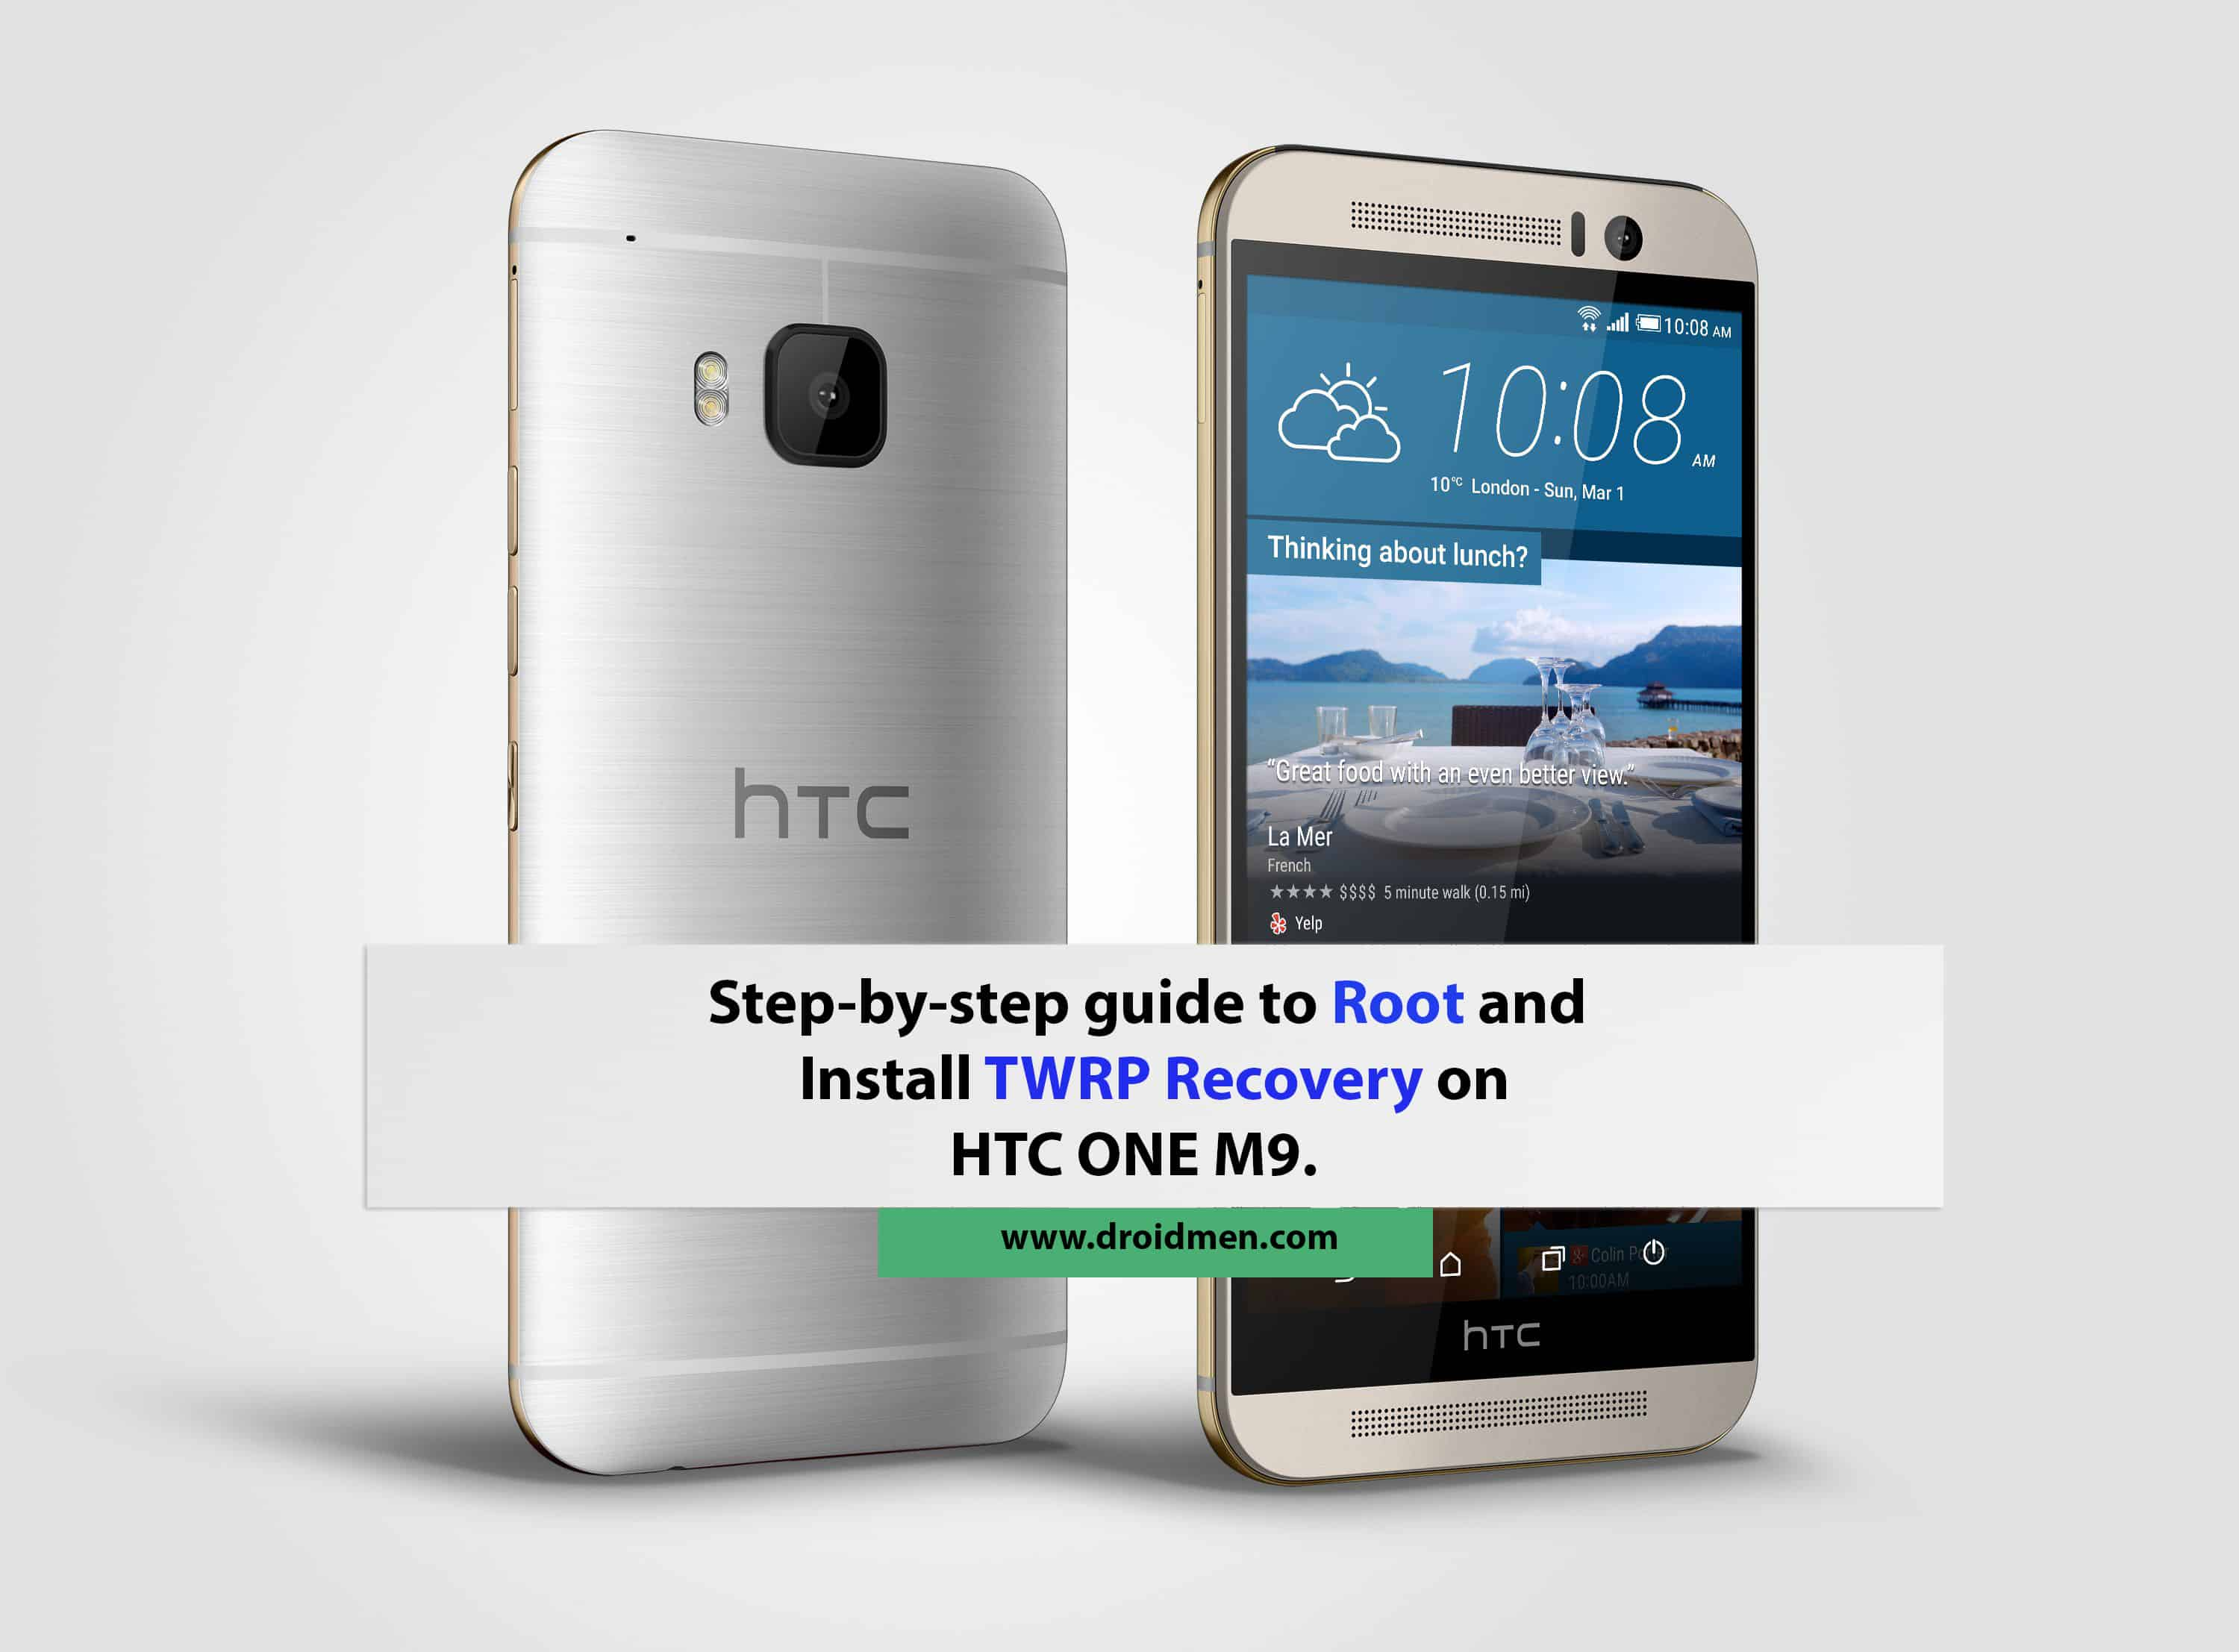 Htc One M9 Rooting Guide and Installing TWRP Recovery